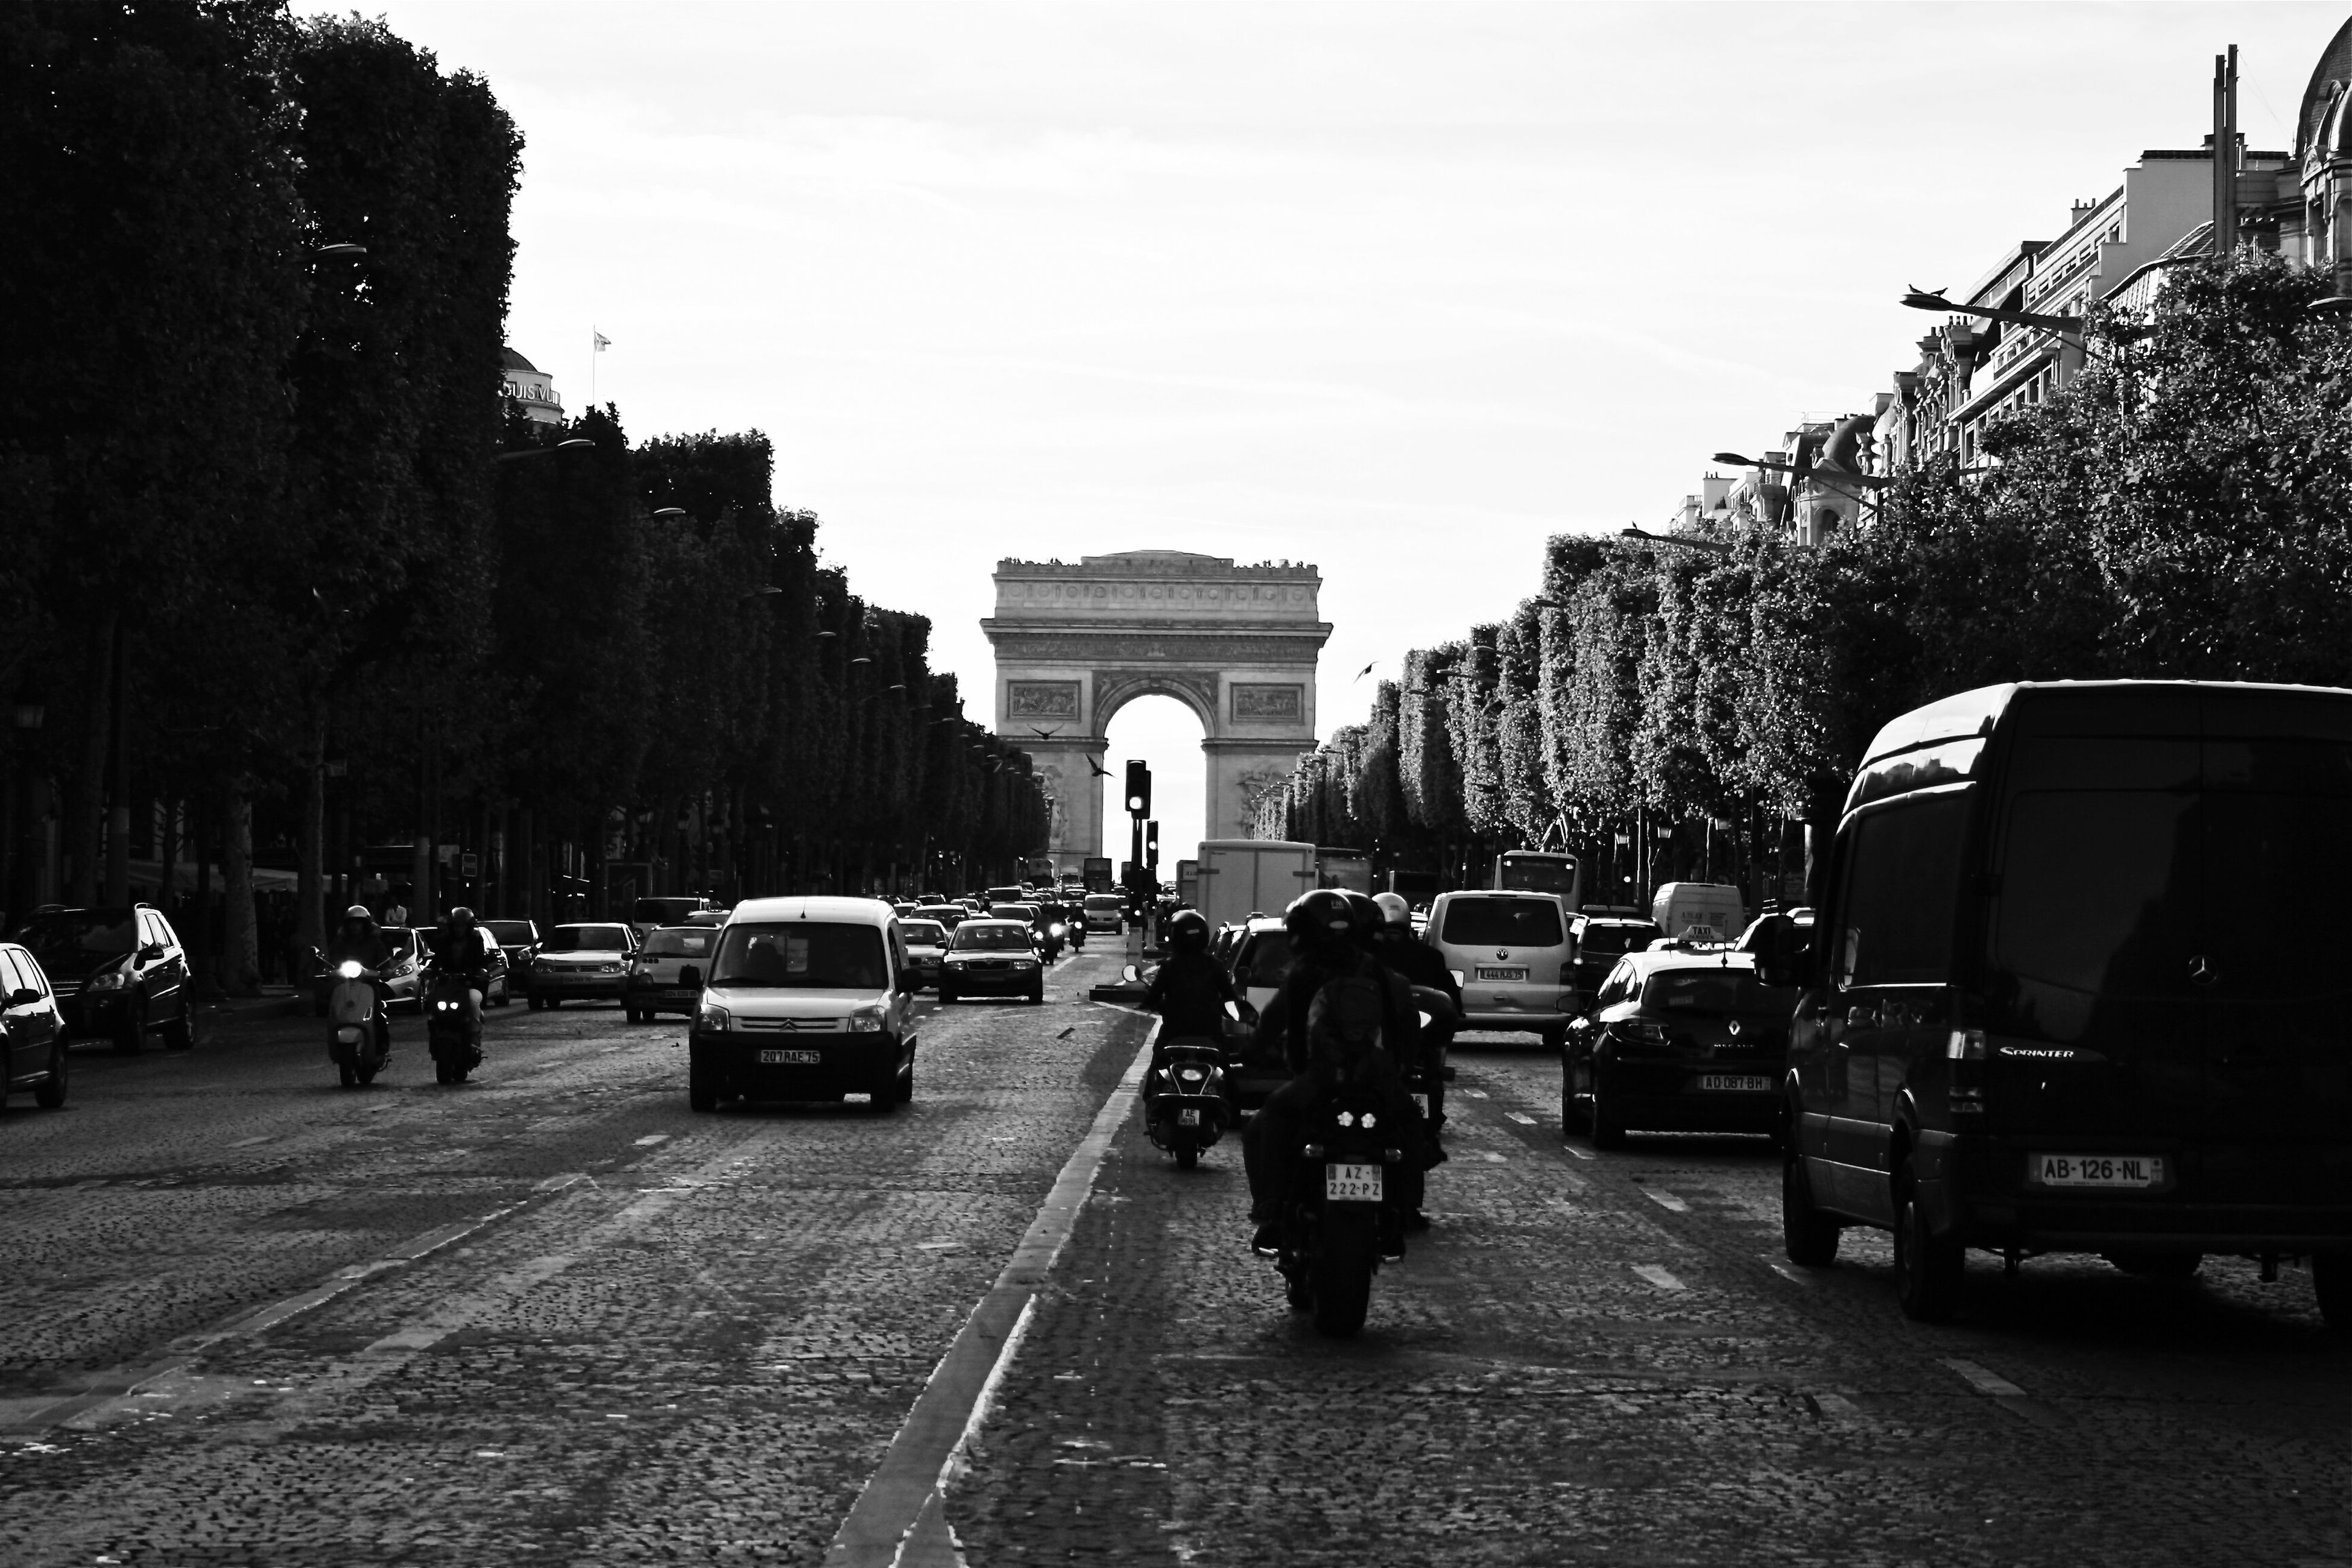 land vehicle, transportation, car, architecture, mode of transport, built structure, travel, street, arch, sky, real people, road, walking, the way forward, outdoors, travel destinations, large group of people, building exterior, triumphal arch, men, day, city, people